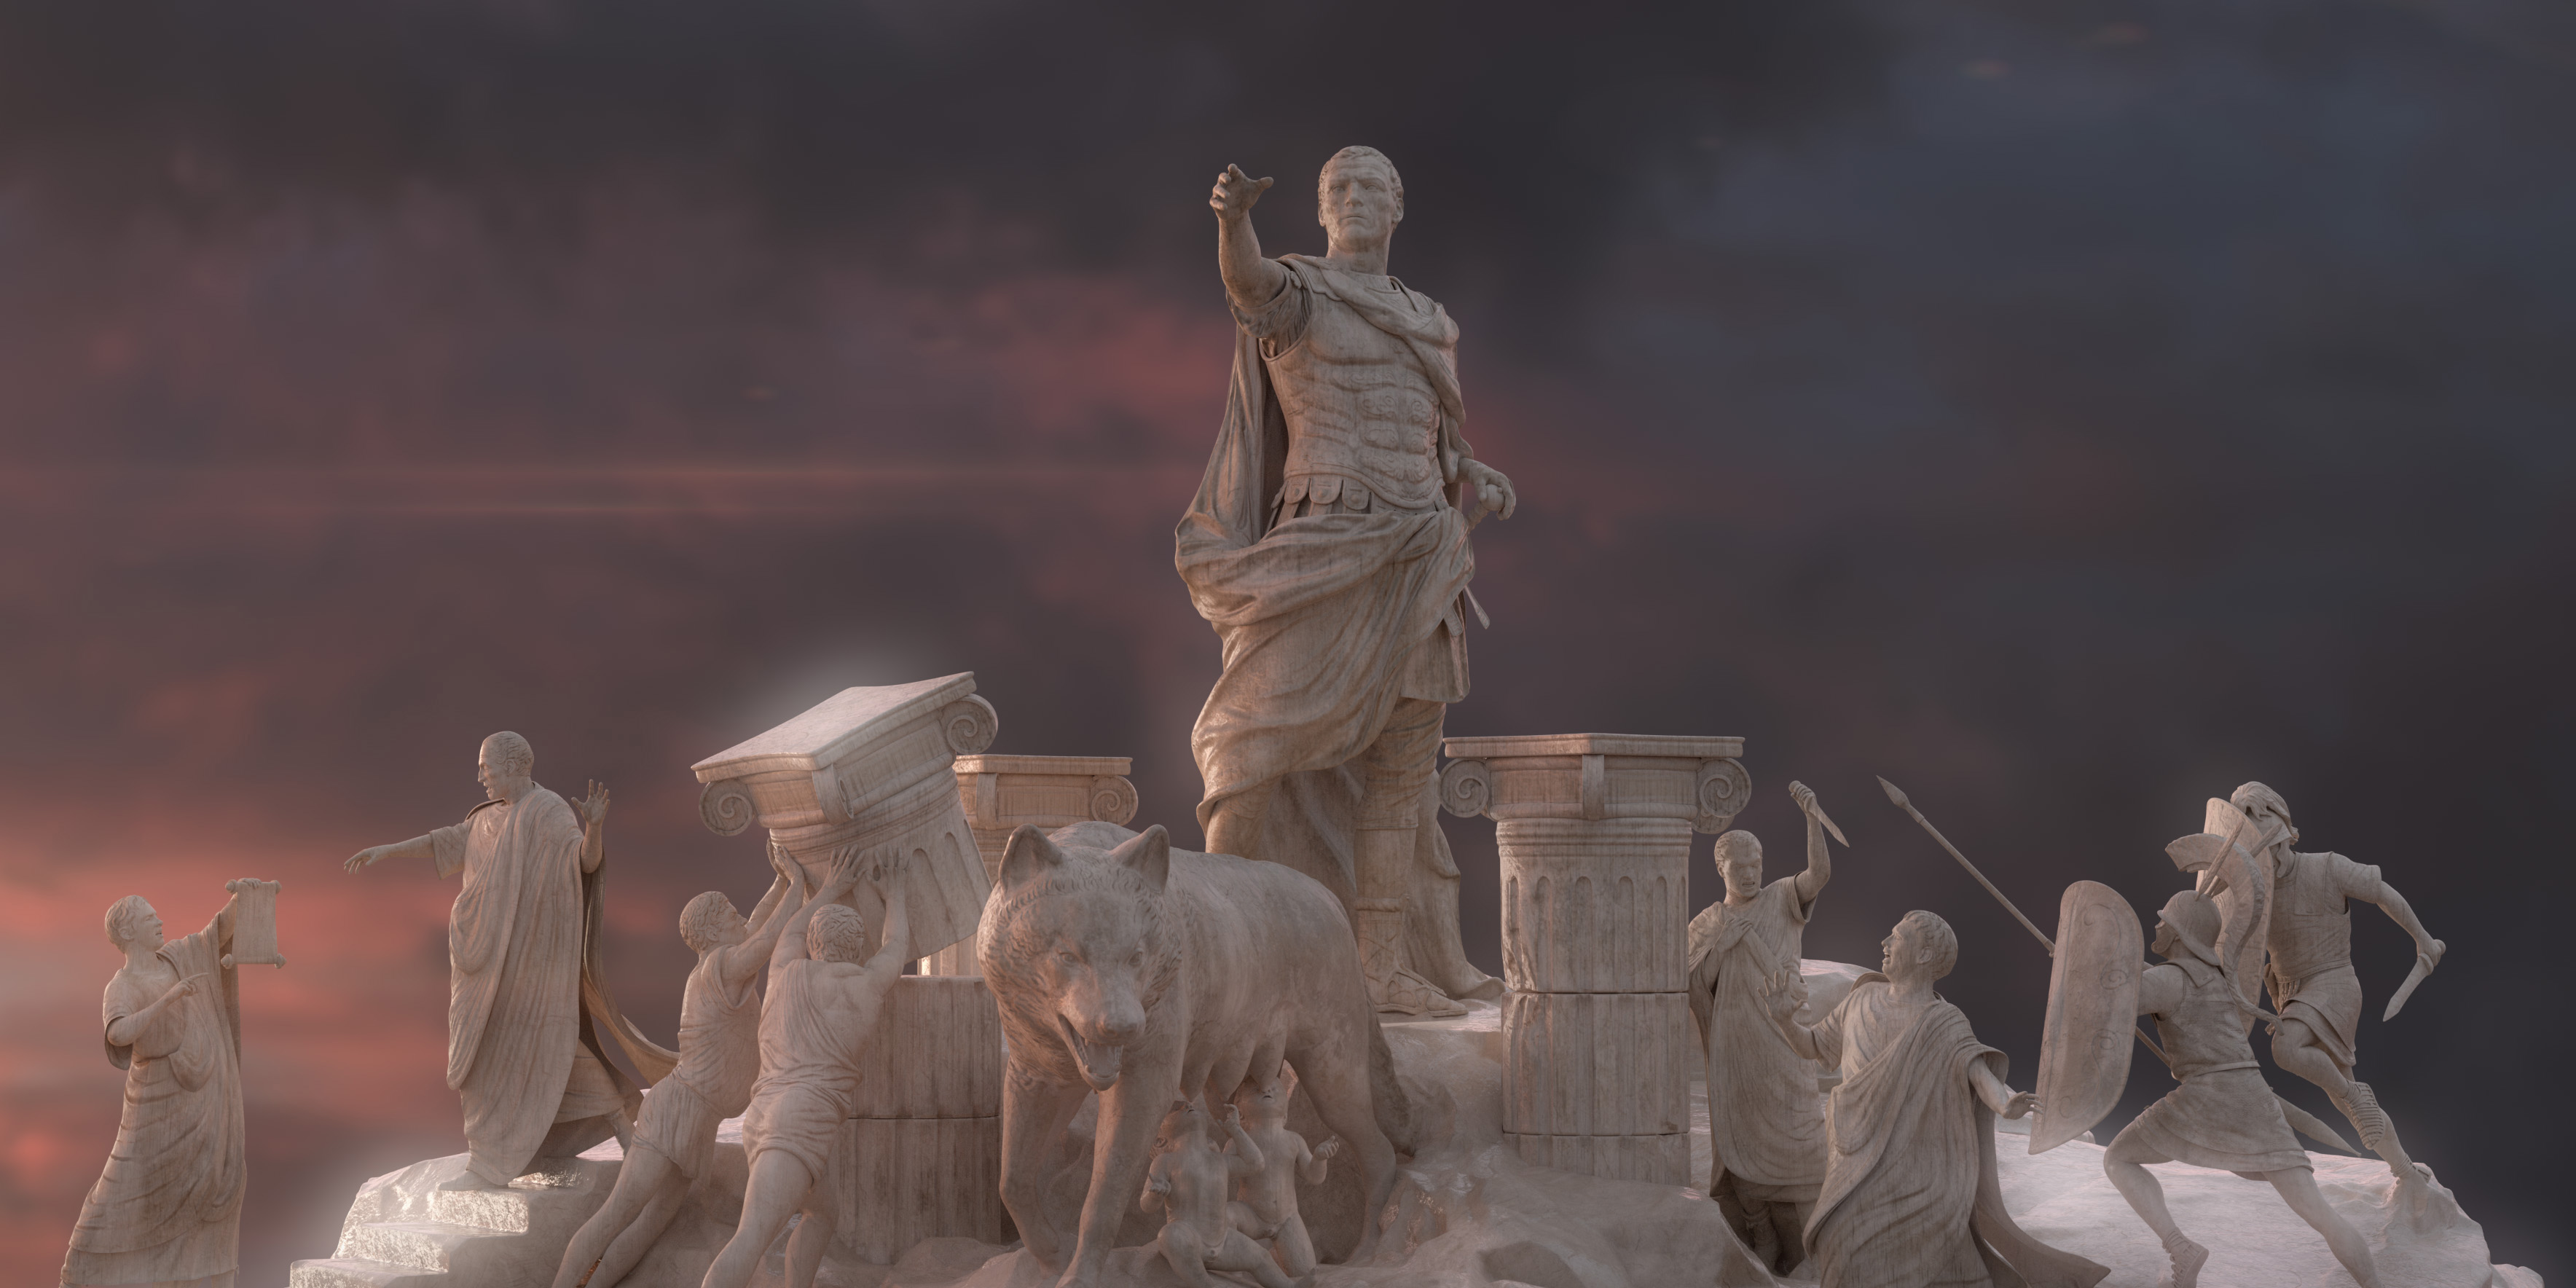 Imperator: Rome is much more than just Crusader Kings in